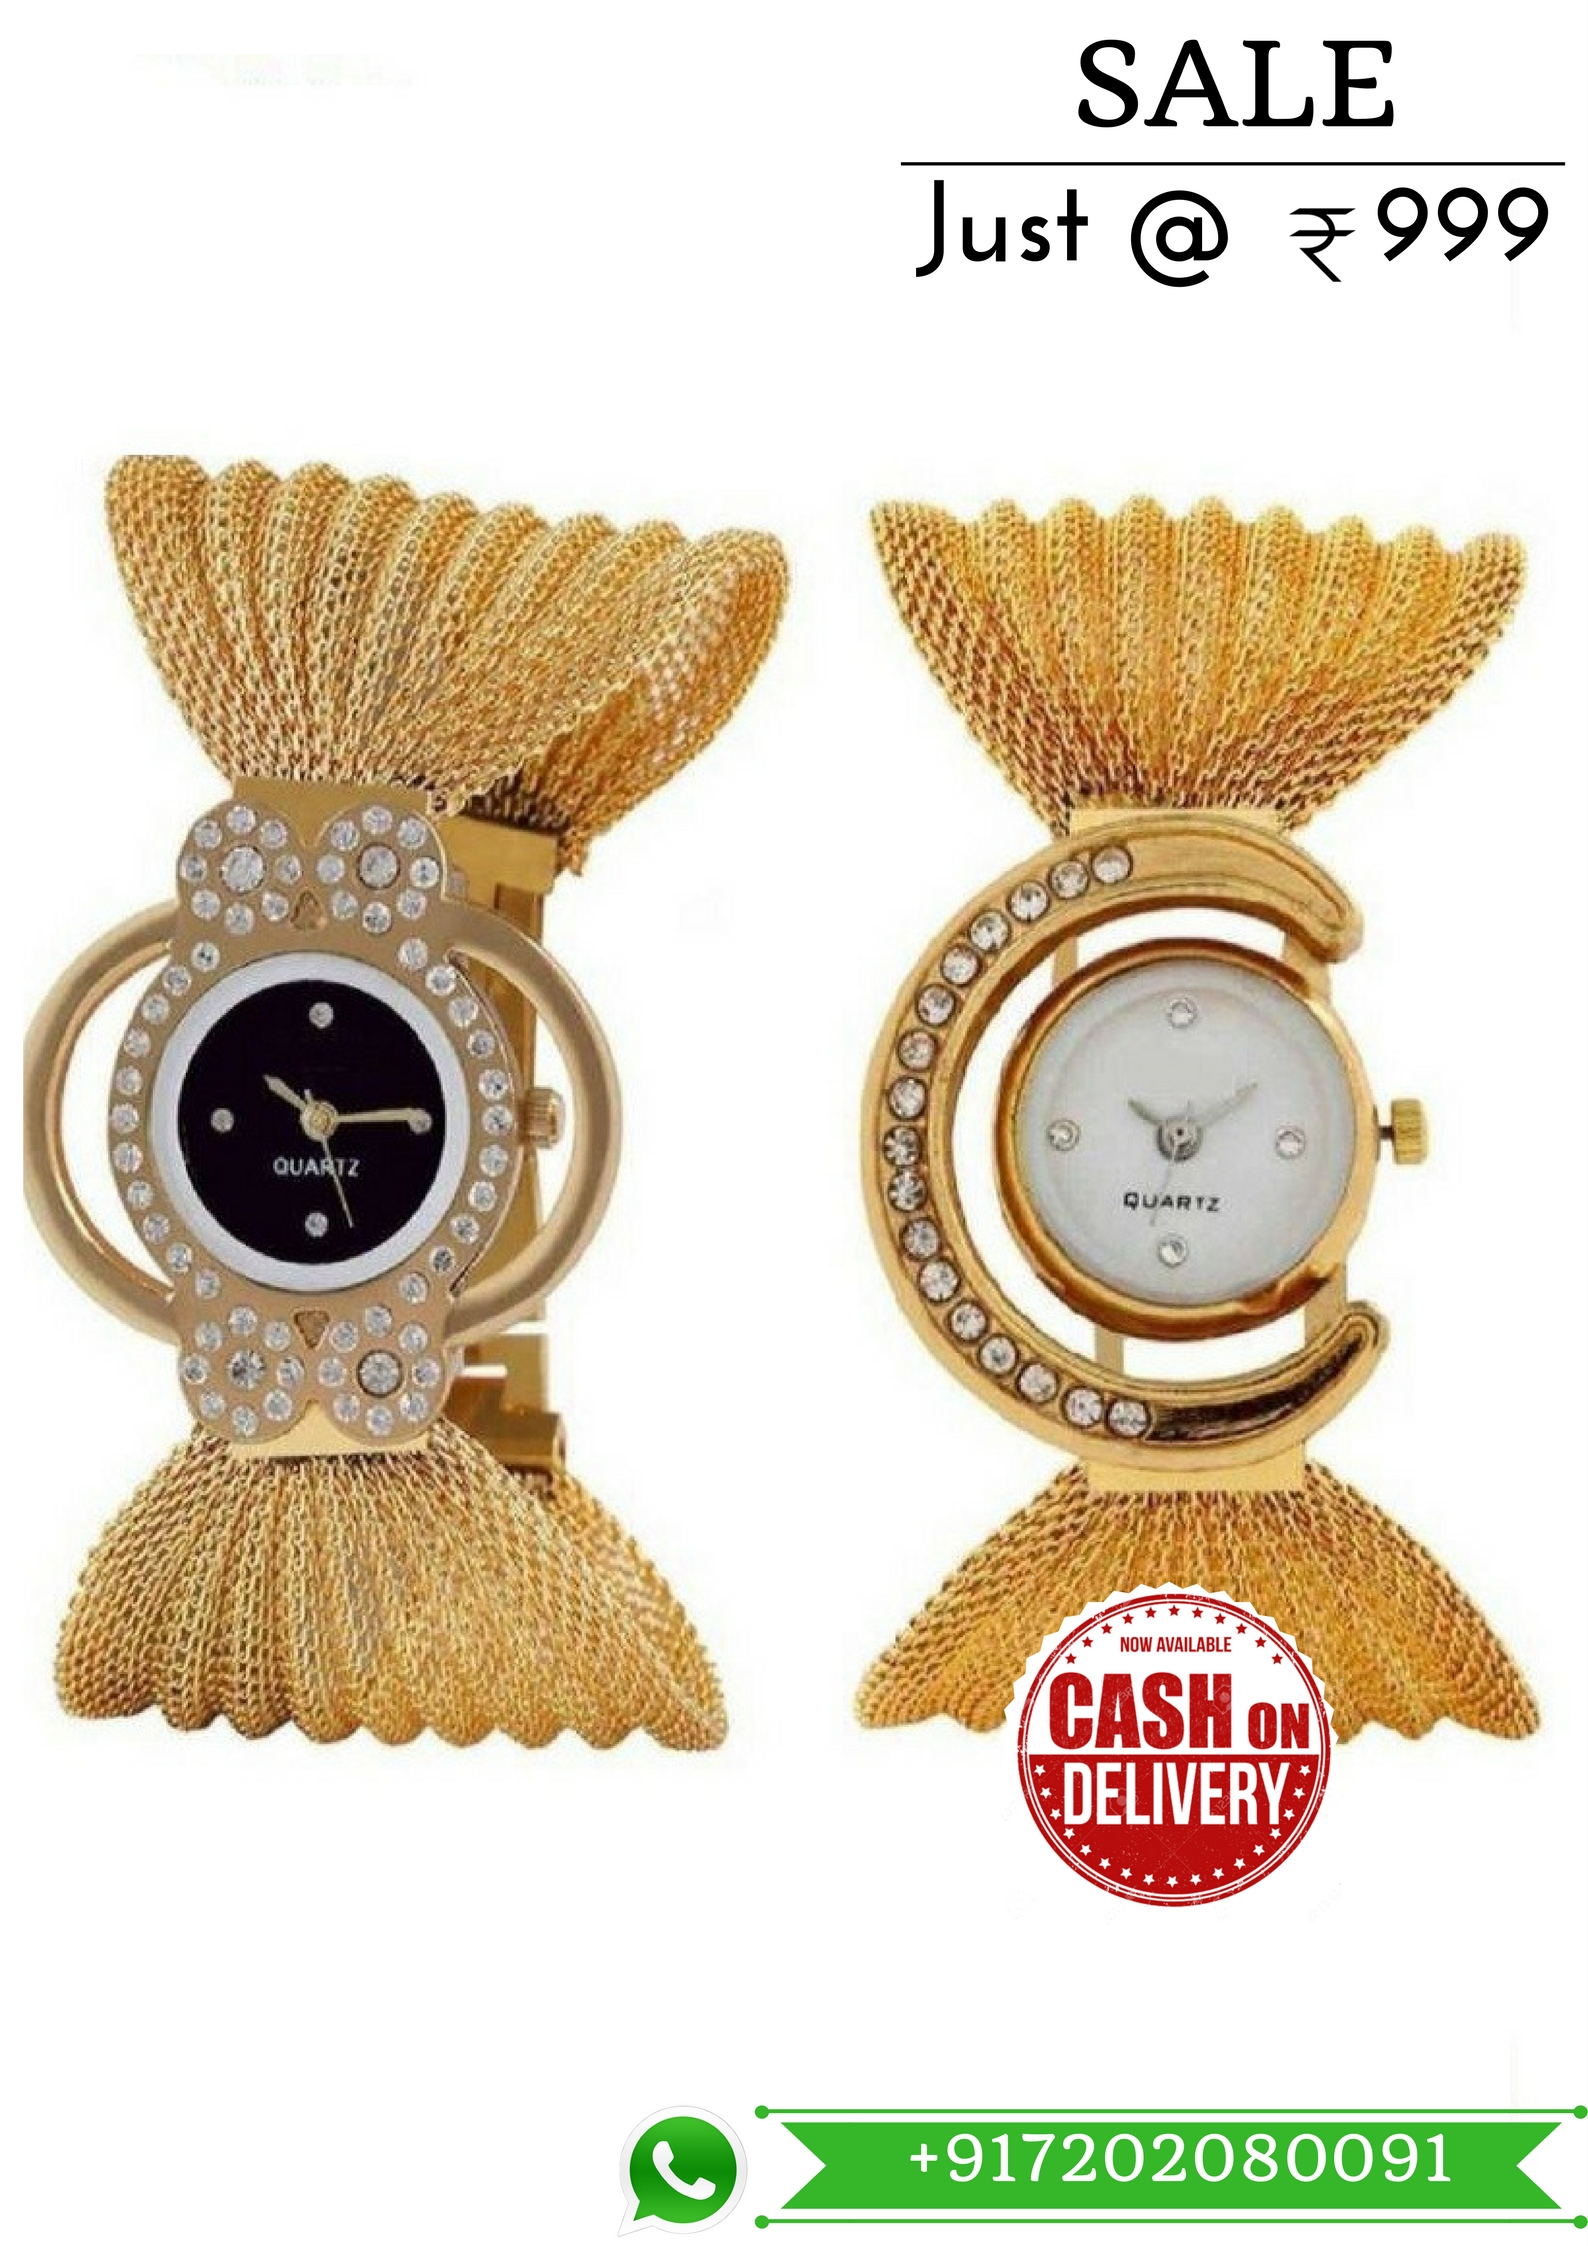 Latest Exclusive Latest Golden Color Designer Watch For Women 7030   For More Detail WhatsApp 7202080091 Or Visit www.SareeBee.com   #lehengas #summer-fashion #summerfashion #bollywood #fun #dress #streetstyle #ethnic #designer #styles #travel #indianblogger #roposo #selfie #trendy #lookoftheday #summer #ropo-love #styling #fashionista #cannesfilmfestival #roposogal #shopping #blogger #cool #Womenonroposo  #summer-fashion #summerfashion #raabtathemovie #rocknshop #food #bollywood #fun #dress #ootd #streetstyle #ethnic #designer #styles #travel #indianblogger #roposo #selfie #trendy #lookoftheday #summer #ropo-love #casualvibes #styling #fashionista #cannesfilmfestival #roposogal #shopping #blogger #cool #menonroposo #ethnicwear  #rakshabandhan2017 #rakshabandhangift #watchformen #watchforwomen #coupleWatch #ComboofWatch